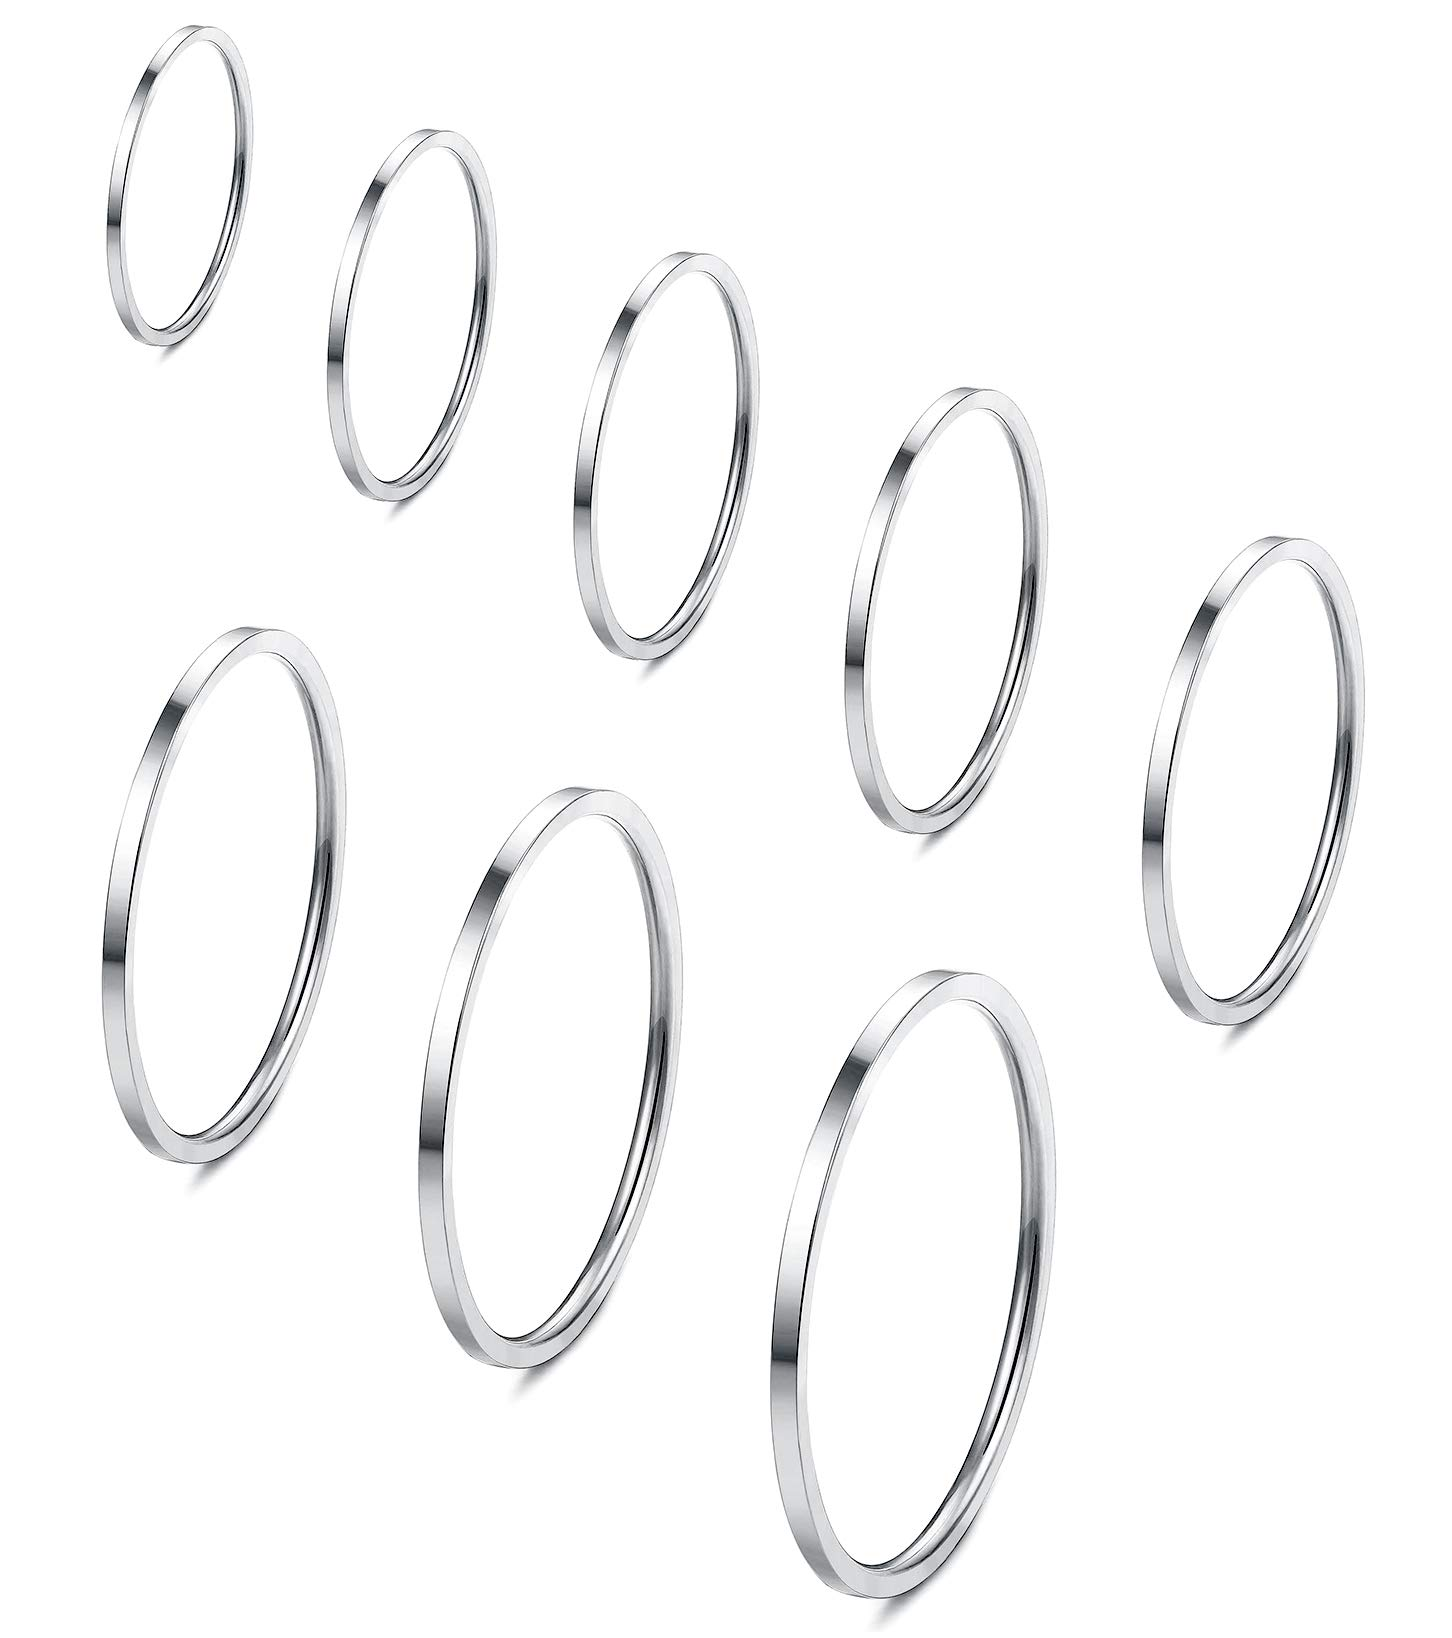 Fiasaso 8 Pcs 1mm Stainless Steel Stacking Rings Knuckle Rings Plain Rings Midi Rings Comfort Fit Size 2 to 9 Silver Tone by Fiasaso